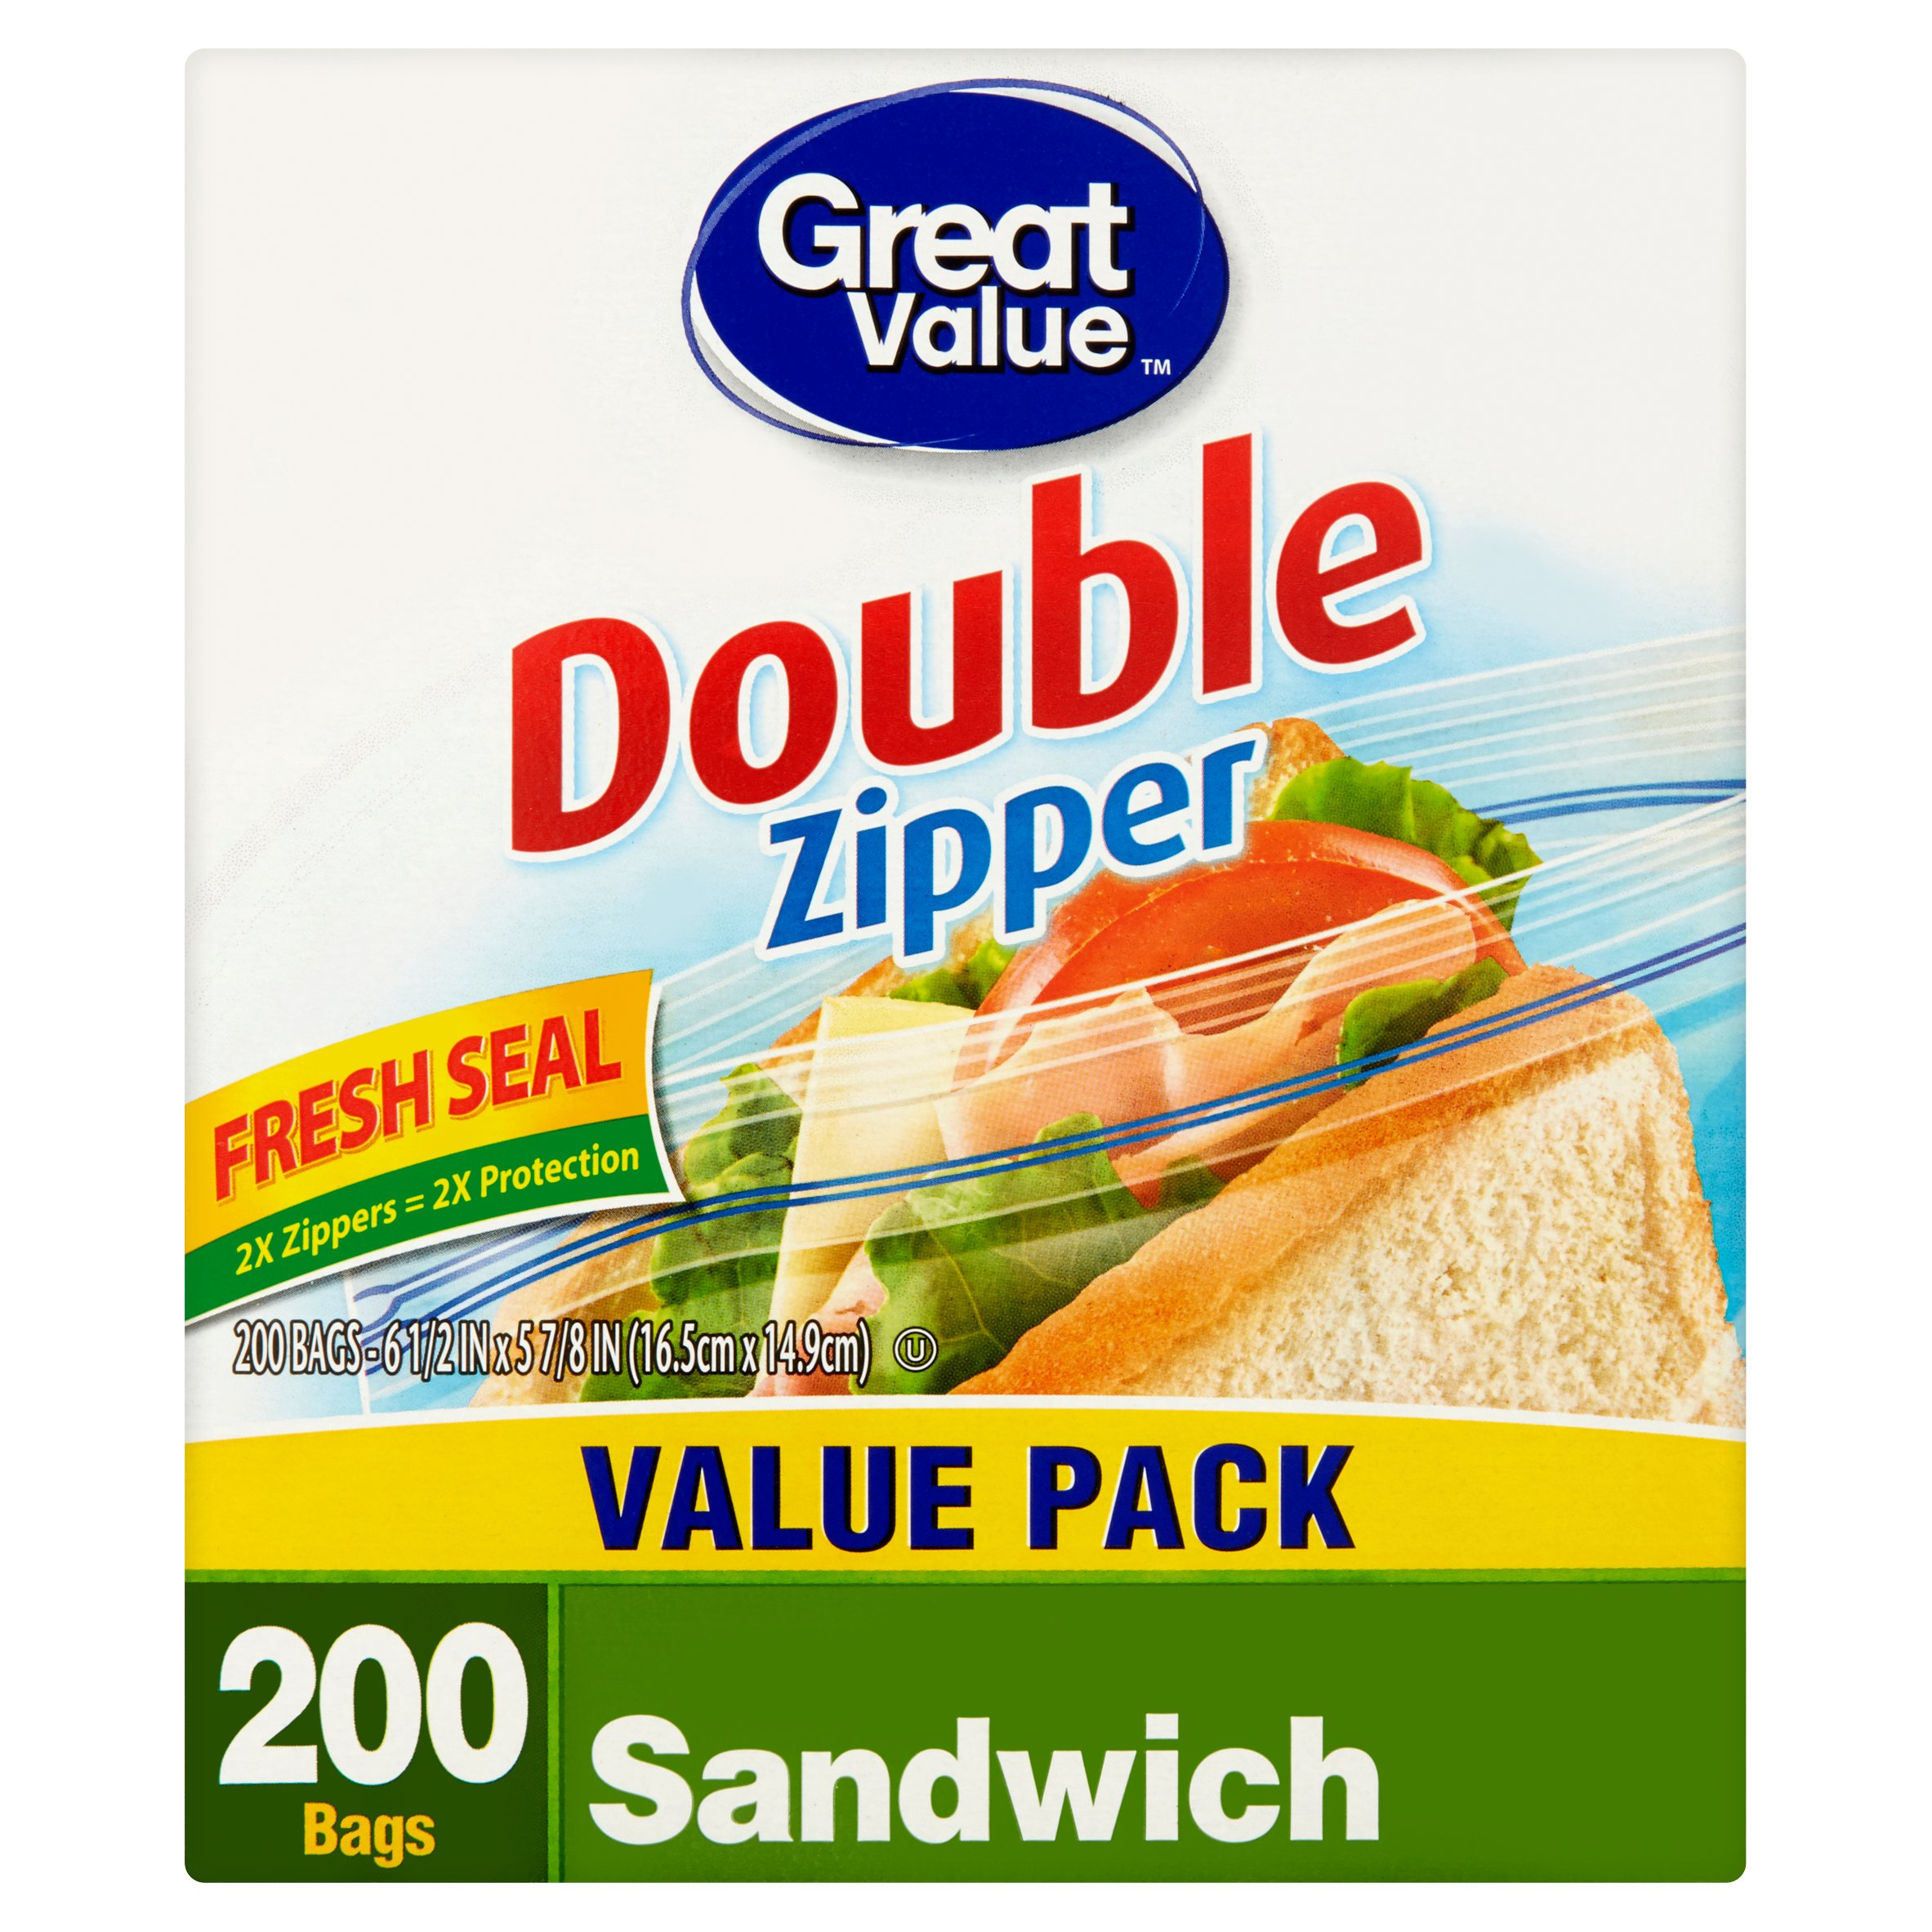 Great Value Double Zipper Sandwich Bags, 200 Ct